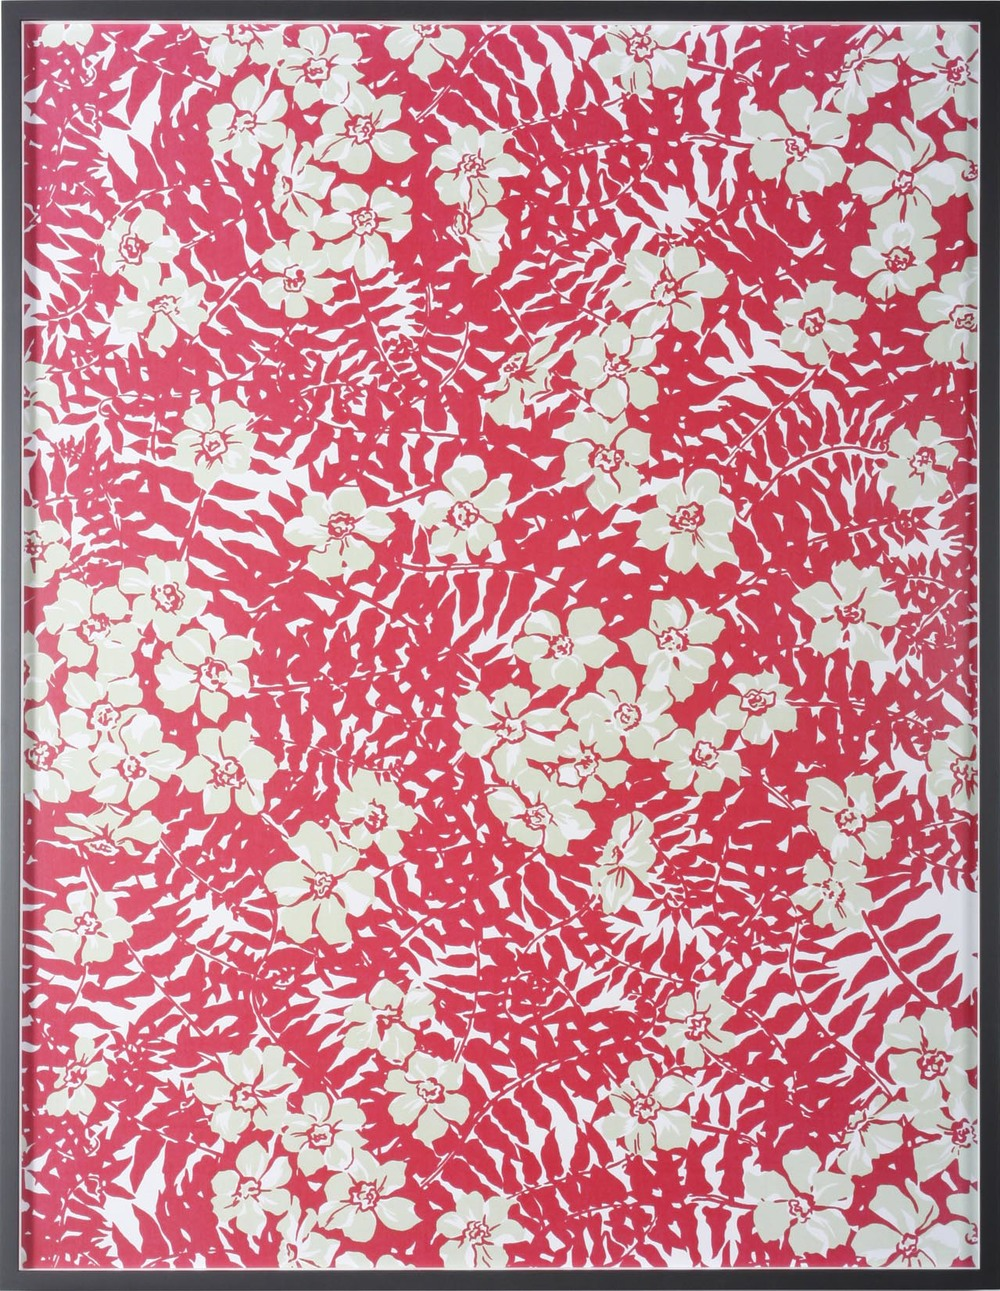 "Big Print #2 (Maui Fern - Cotton ""mainsail cloth"" fall 1949 design Dorothy Draper, courtesy Schumacher &Co) 2007 C-Print: 131.5 x 100.5 cm / 51.8 x 39.6 in"